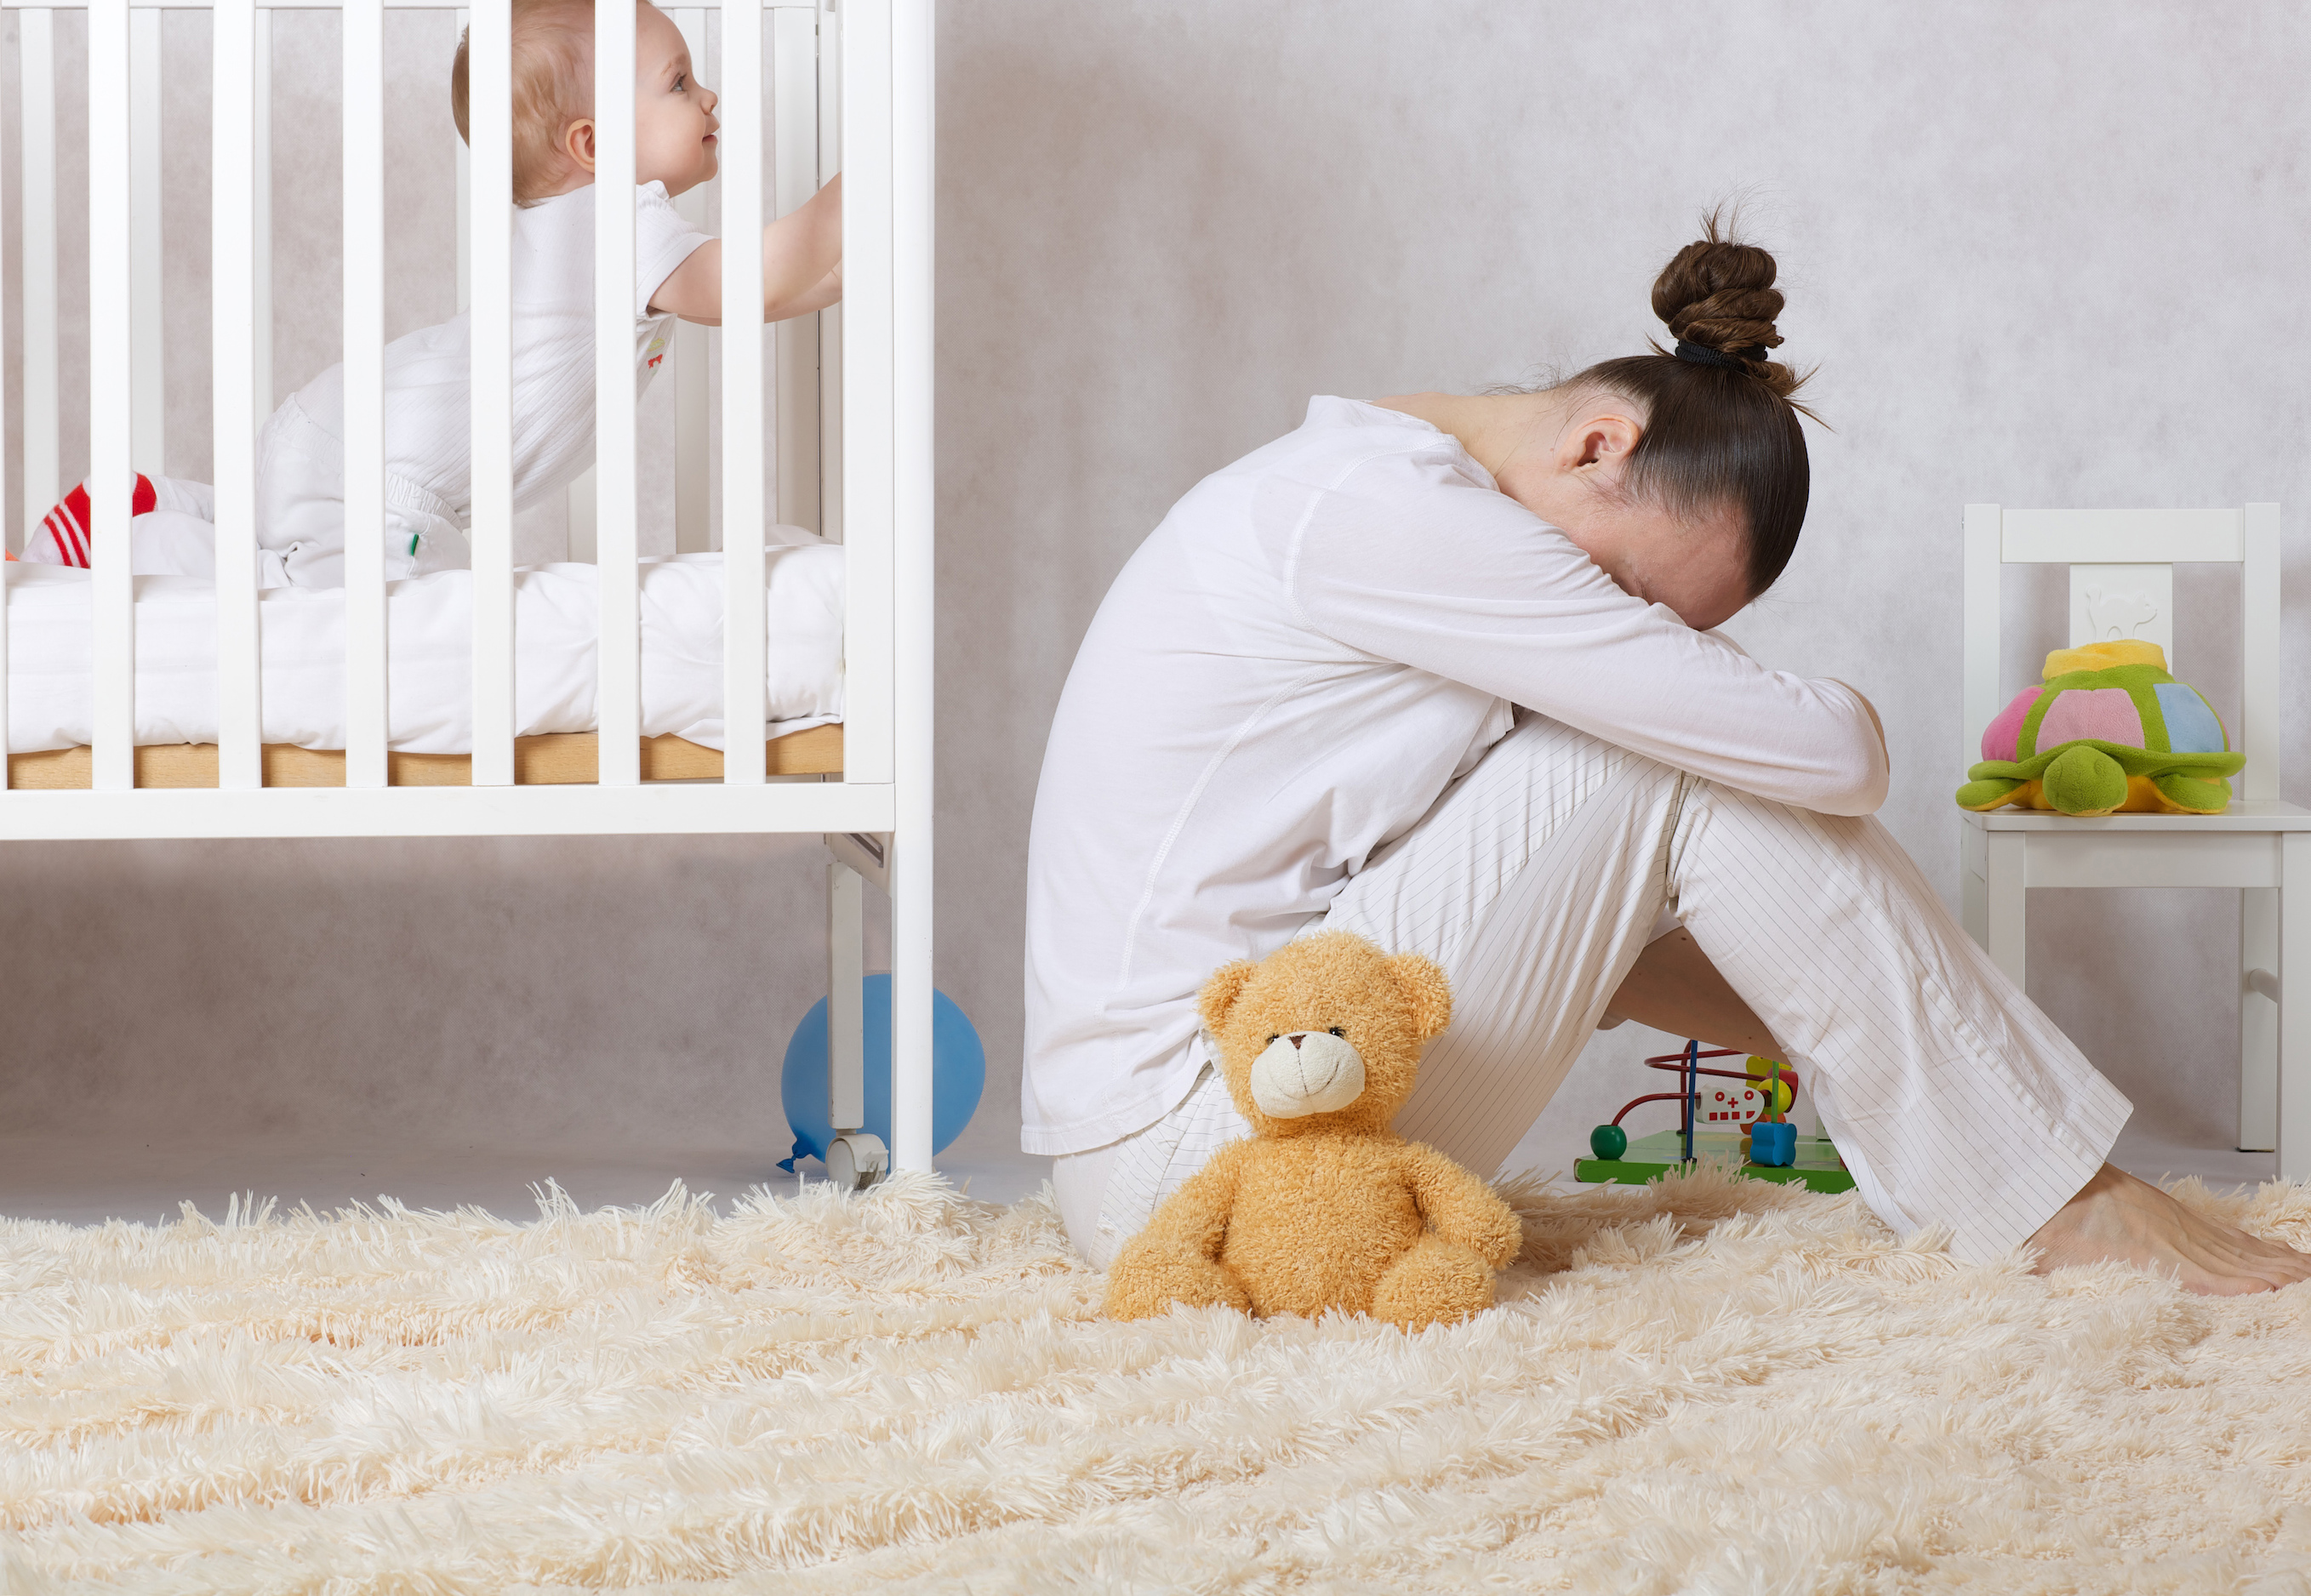 Researchers are reporting that depression in mothers can have a negative effect on the cognitive development of their children up until the age of 16.